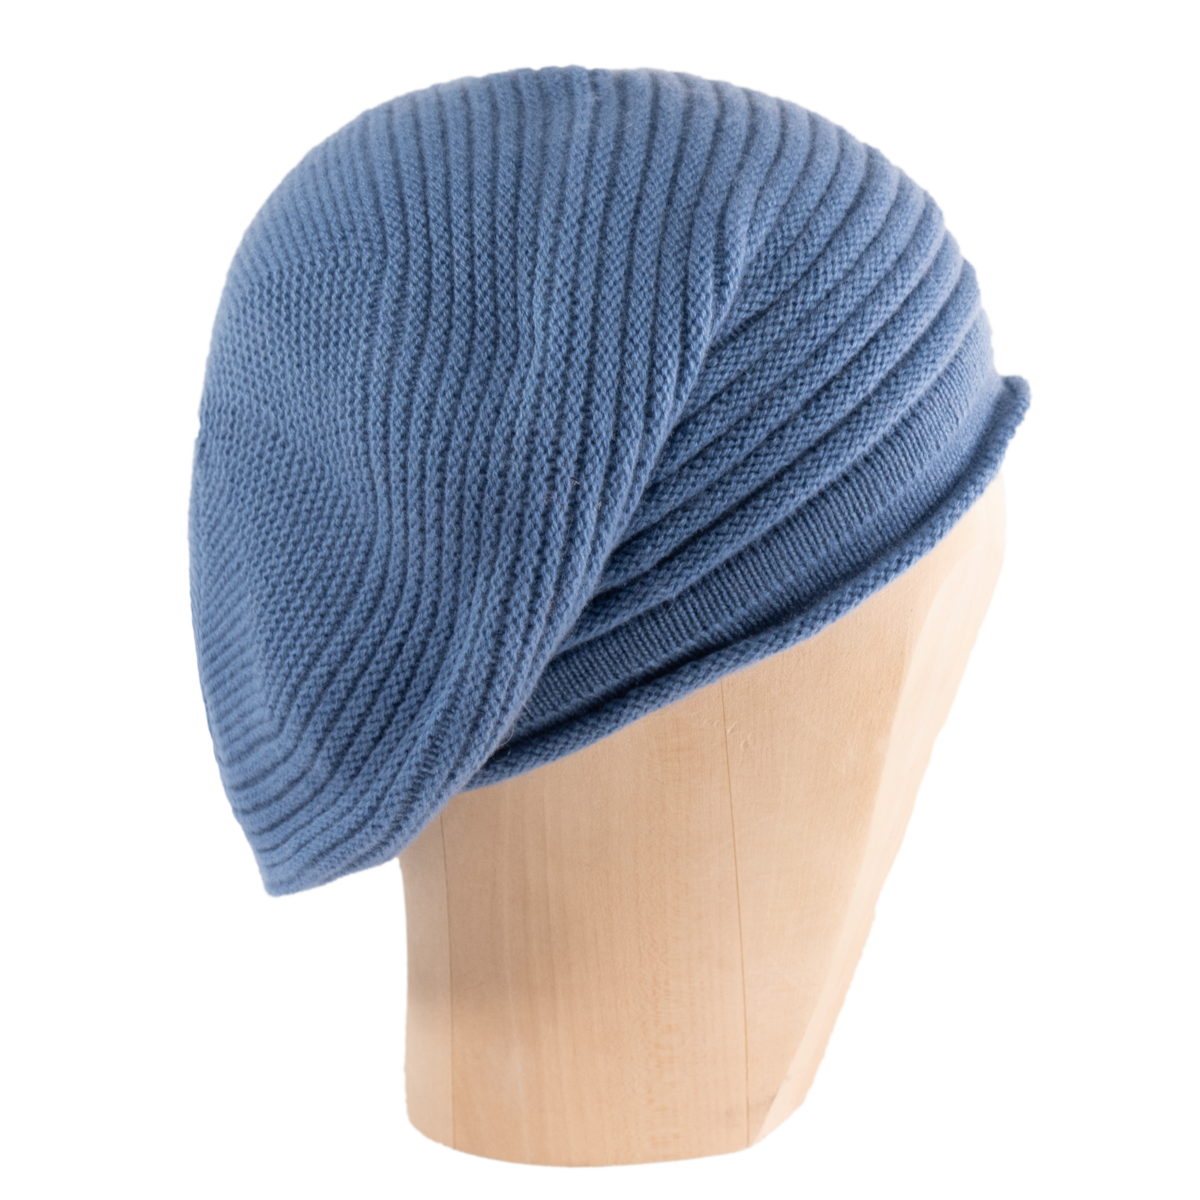 Horizontal Knit Beanie - FOGGY BLUE - product images  of